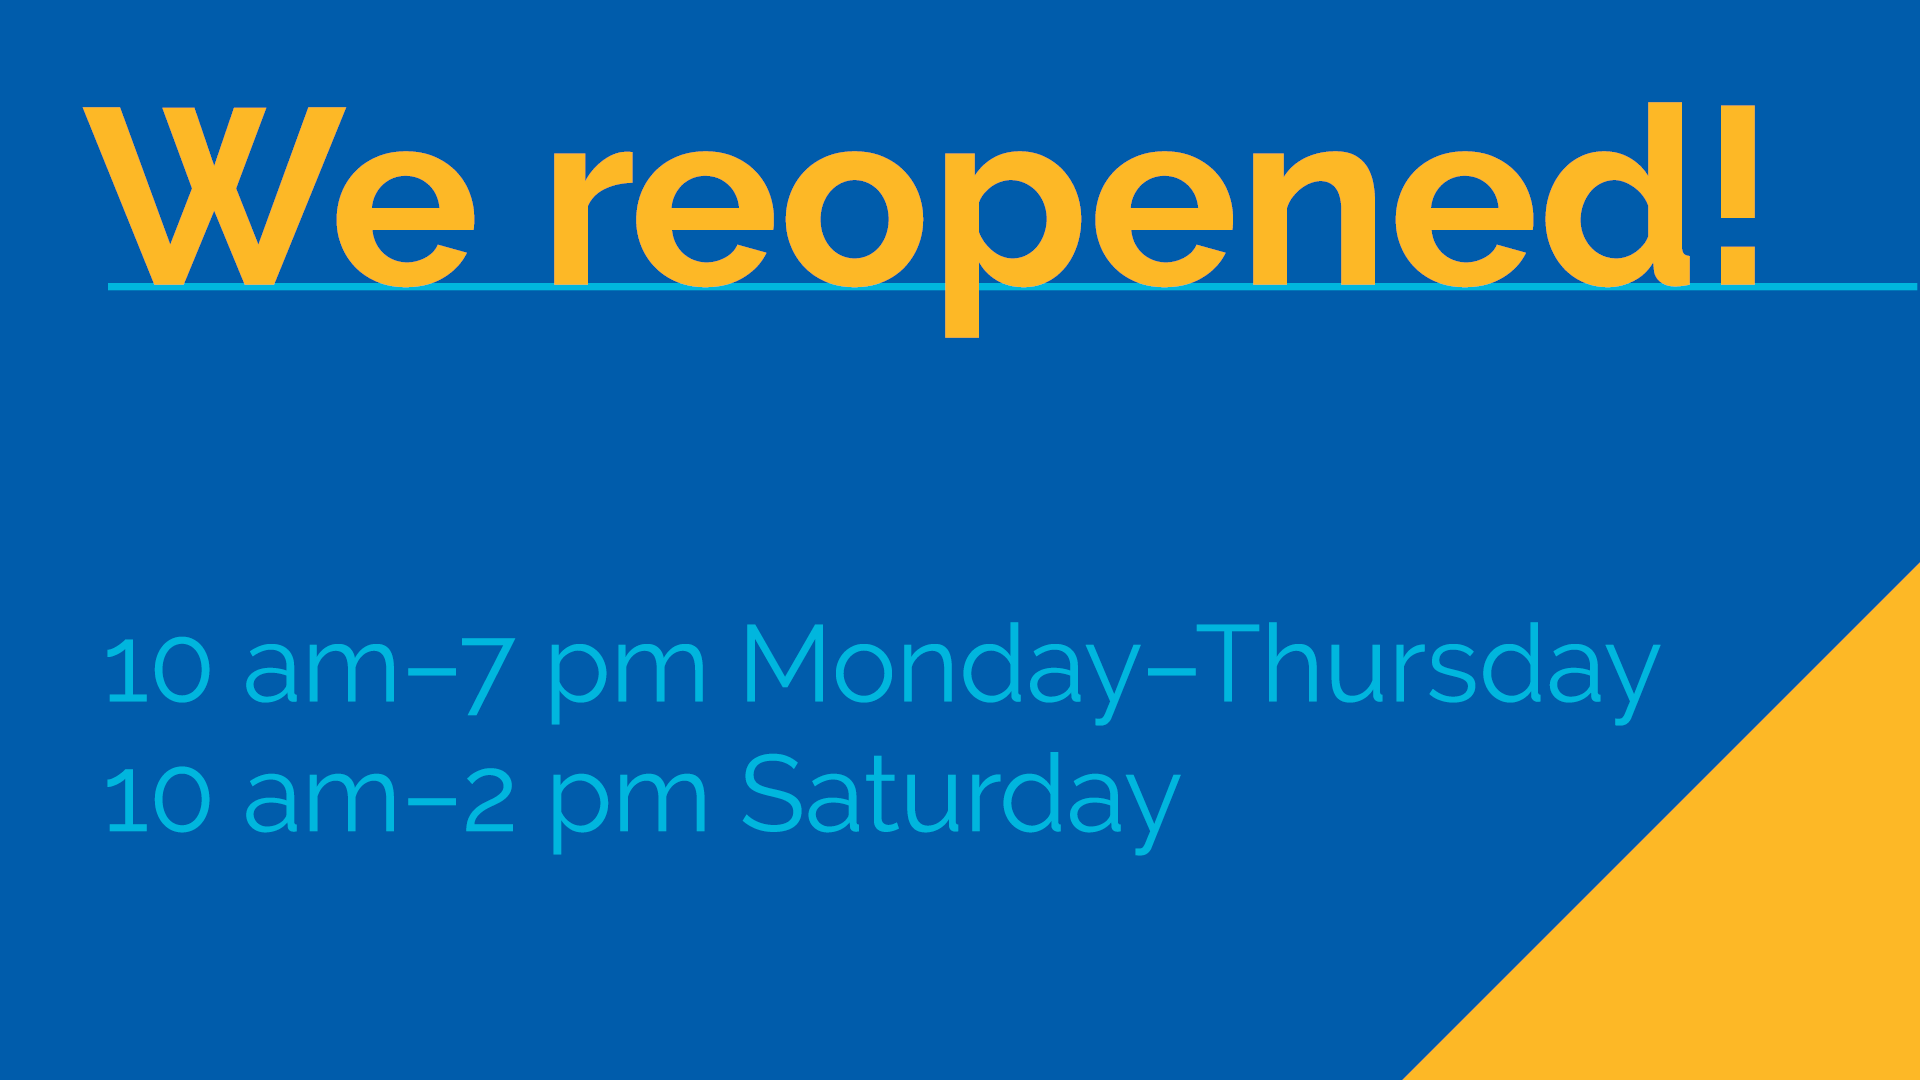 We reopened! 10 am-7 pm Monday to Thursday, 10 am to 2 pm Saturday